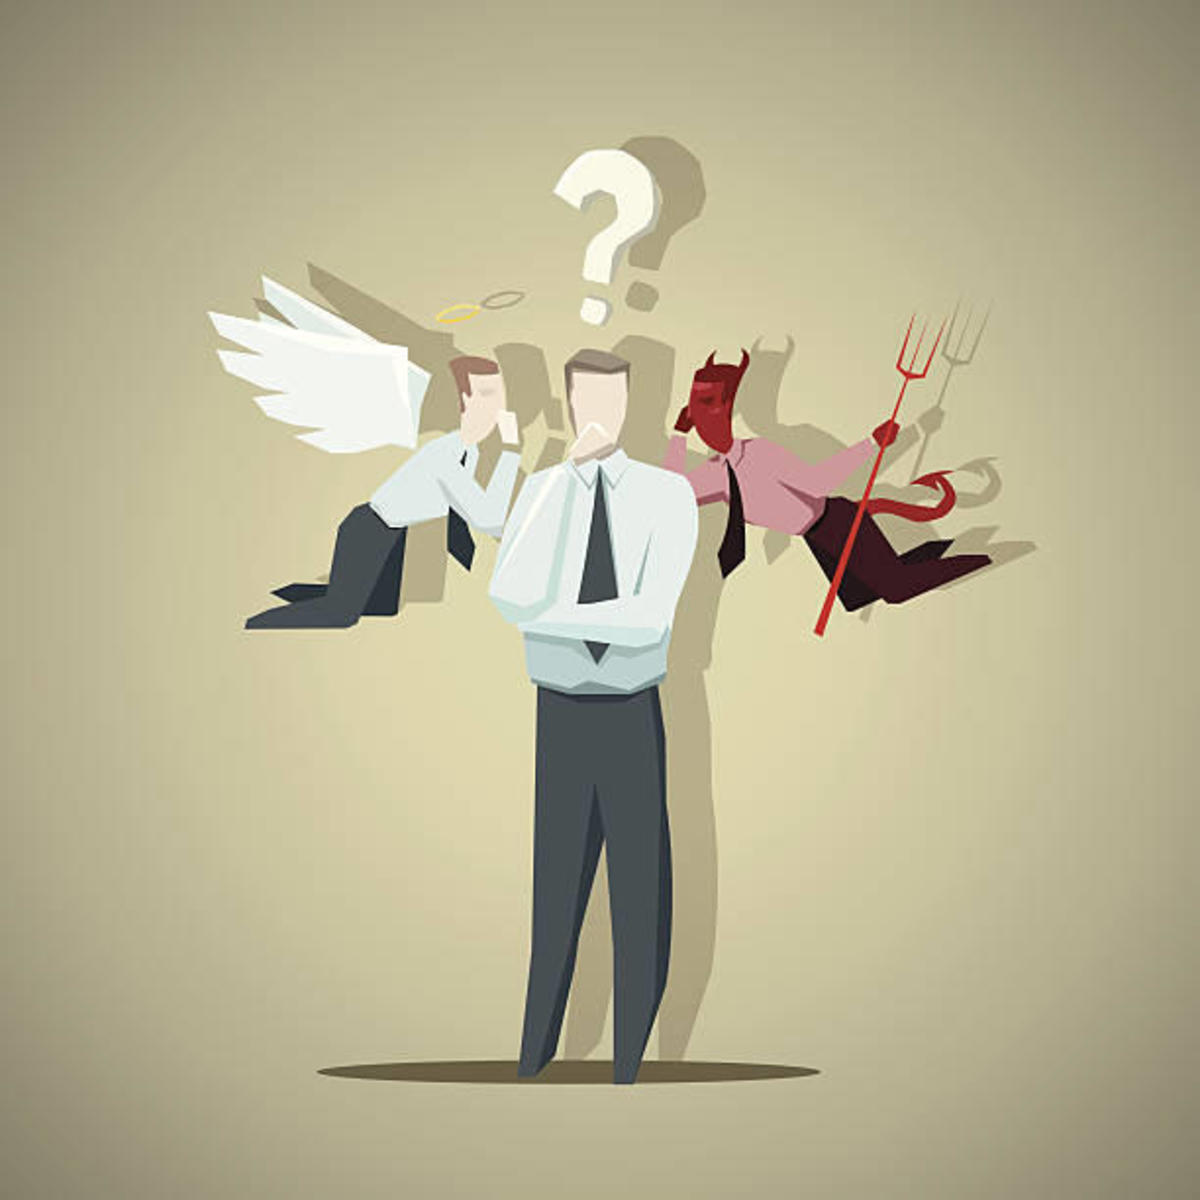 why-does-your-internal-conflict-act-against-better-judgment